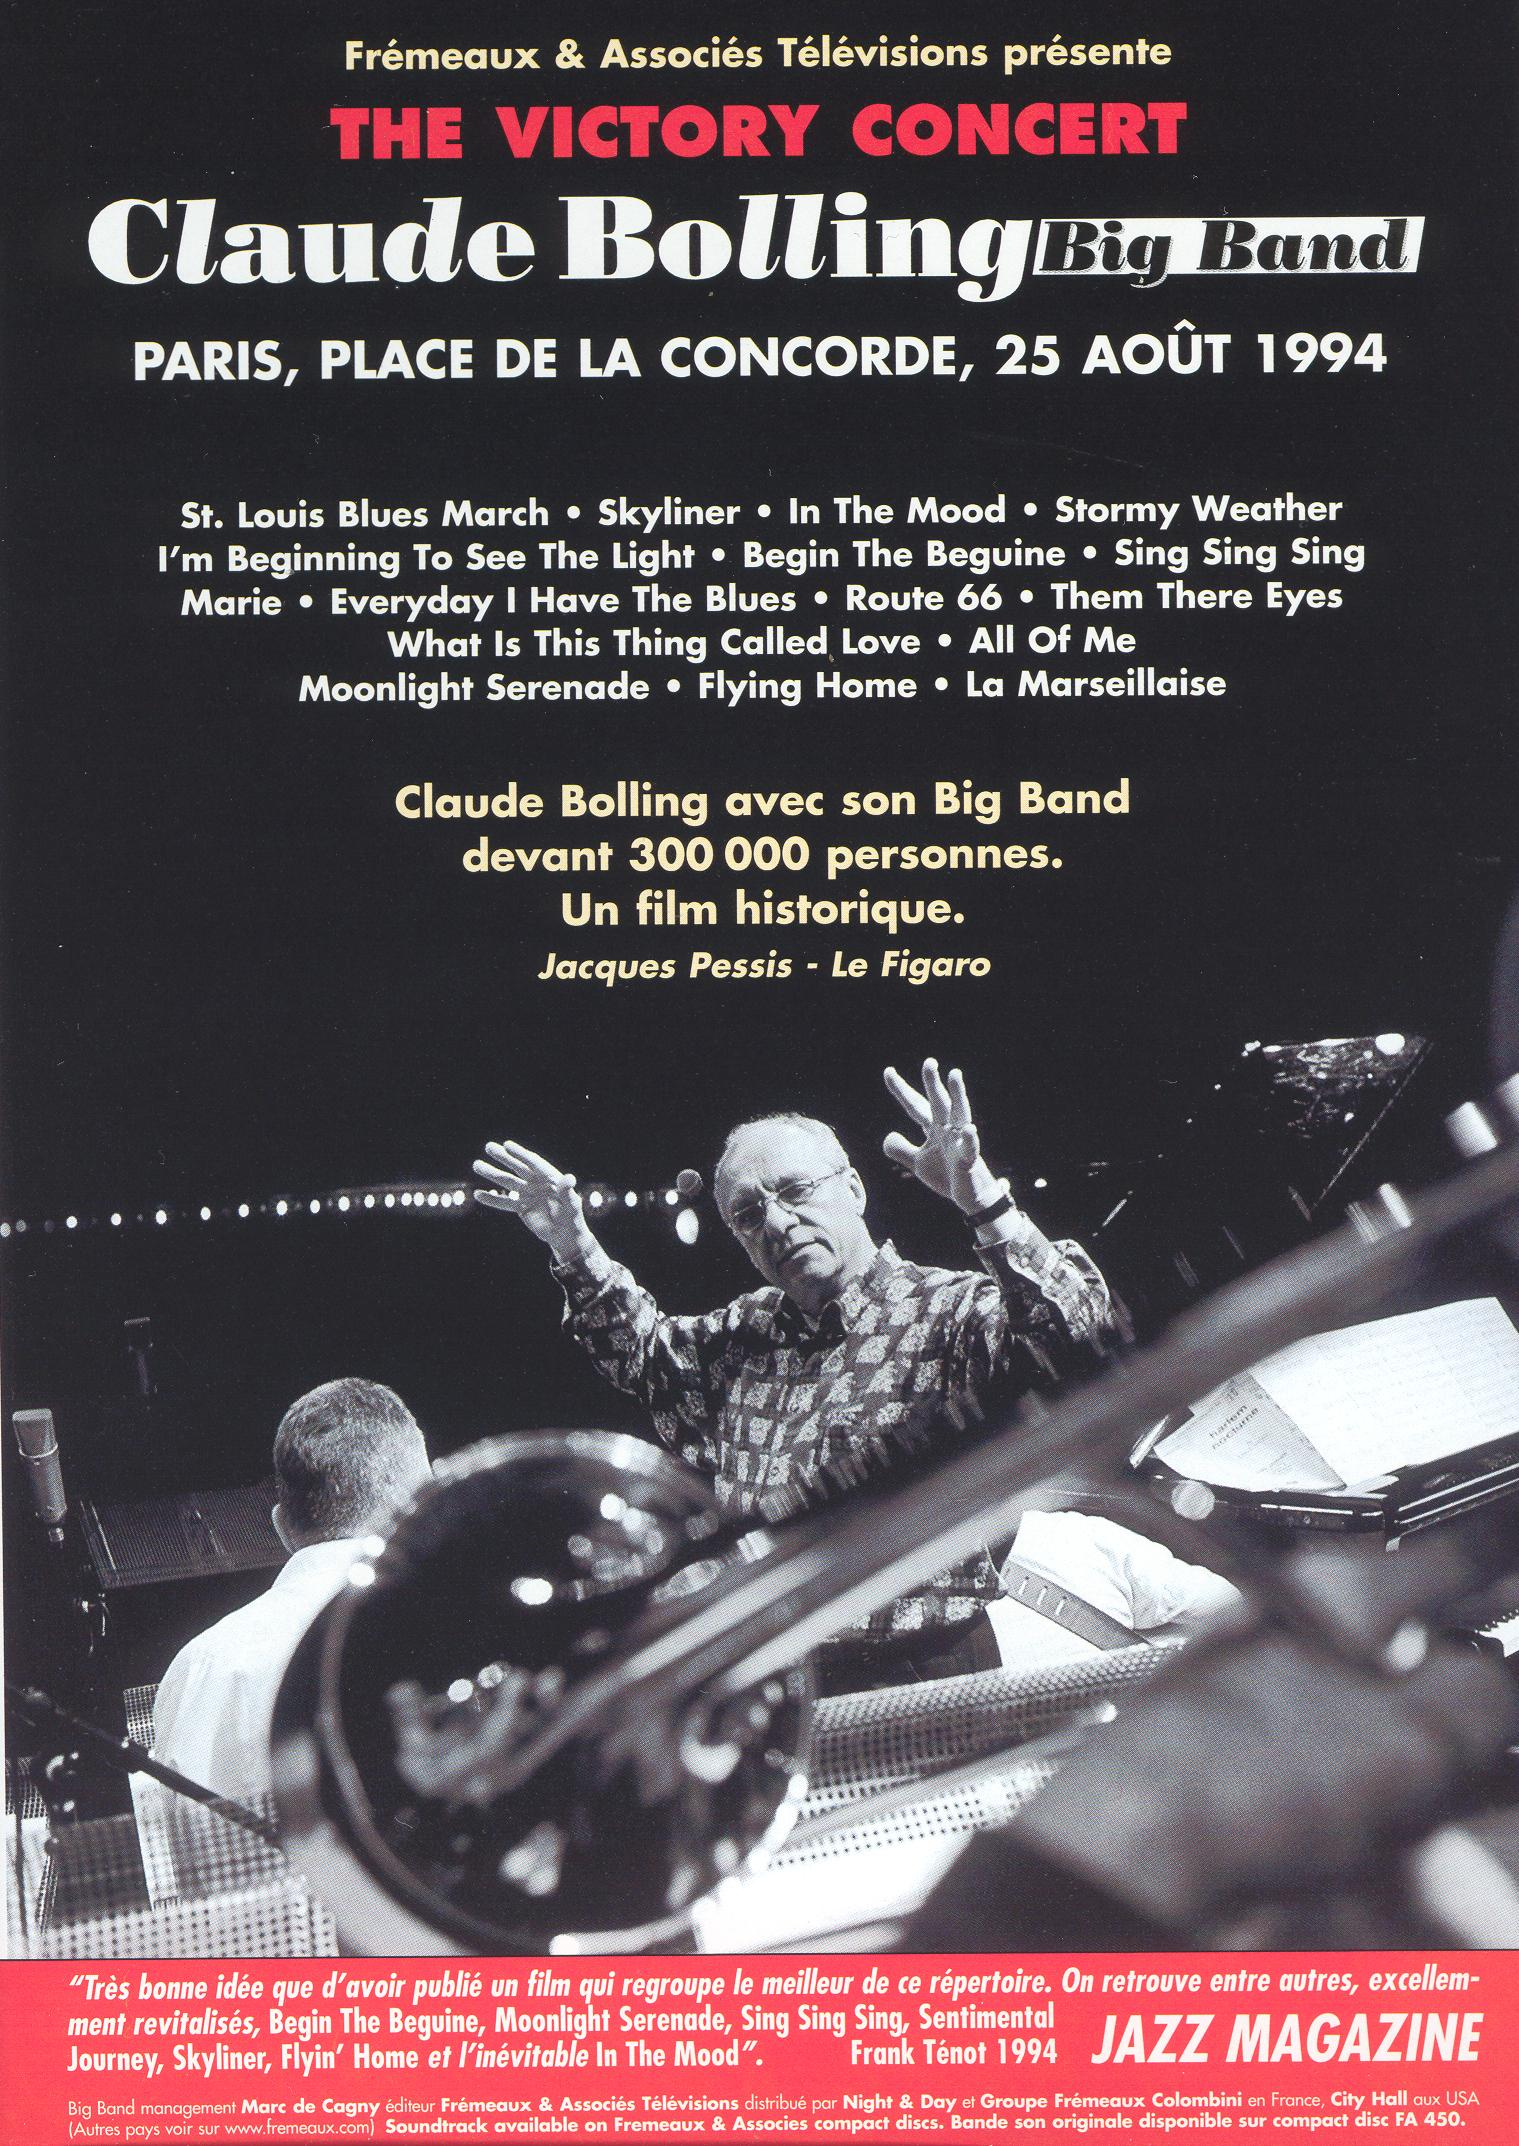 Claude Bolling Big Band: The Victory Concert